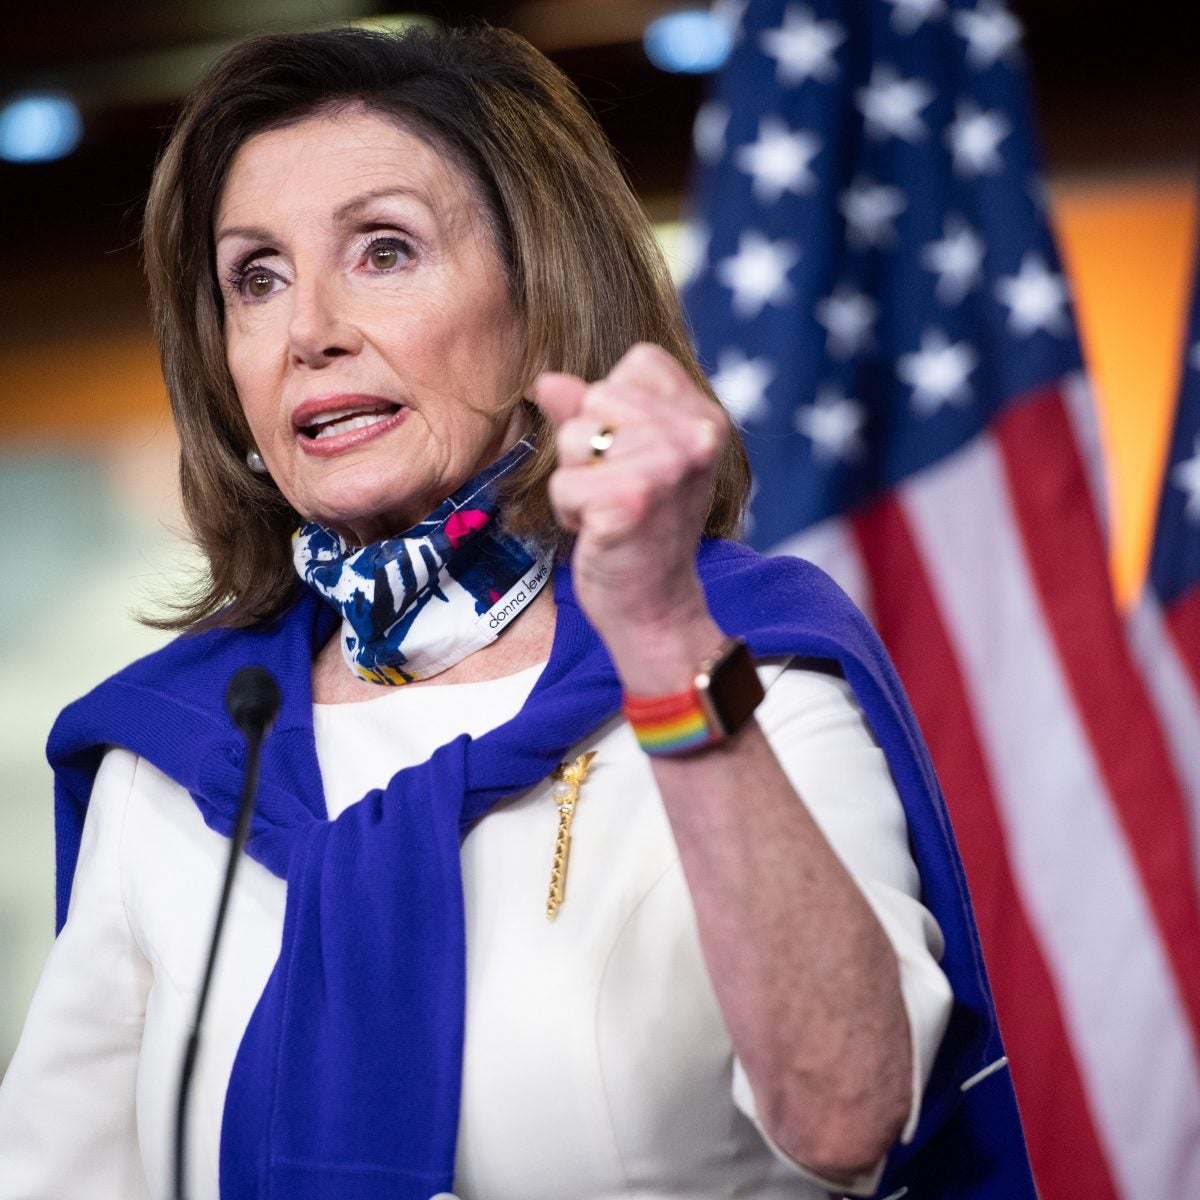 Nancy Pelosi Coins A New Name For The Coronavirus That Trump Is Sure Not To Like